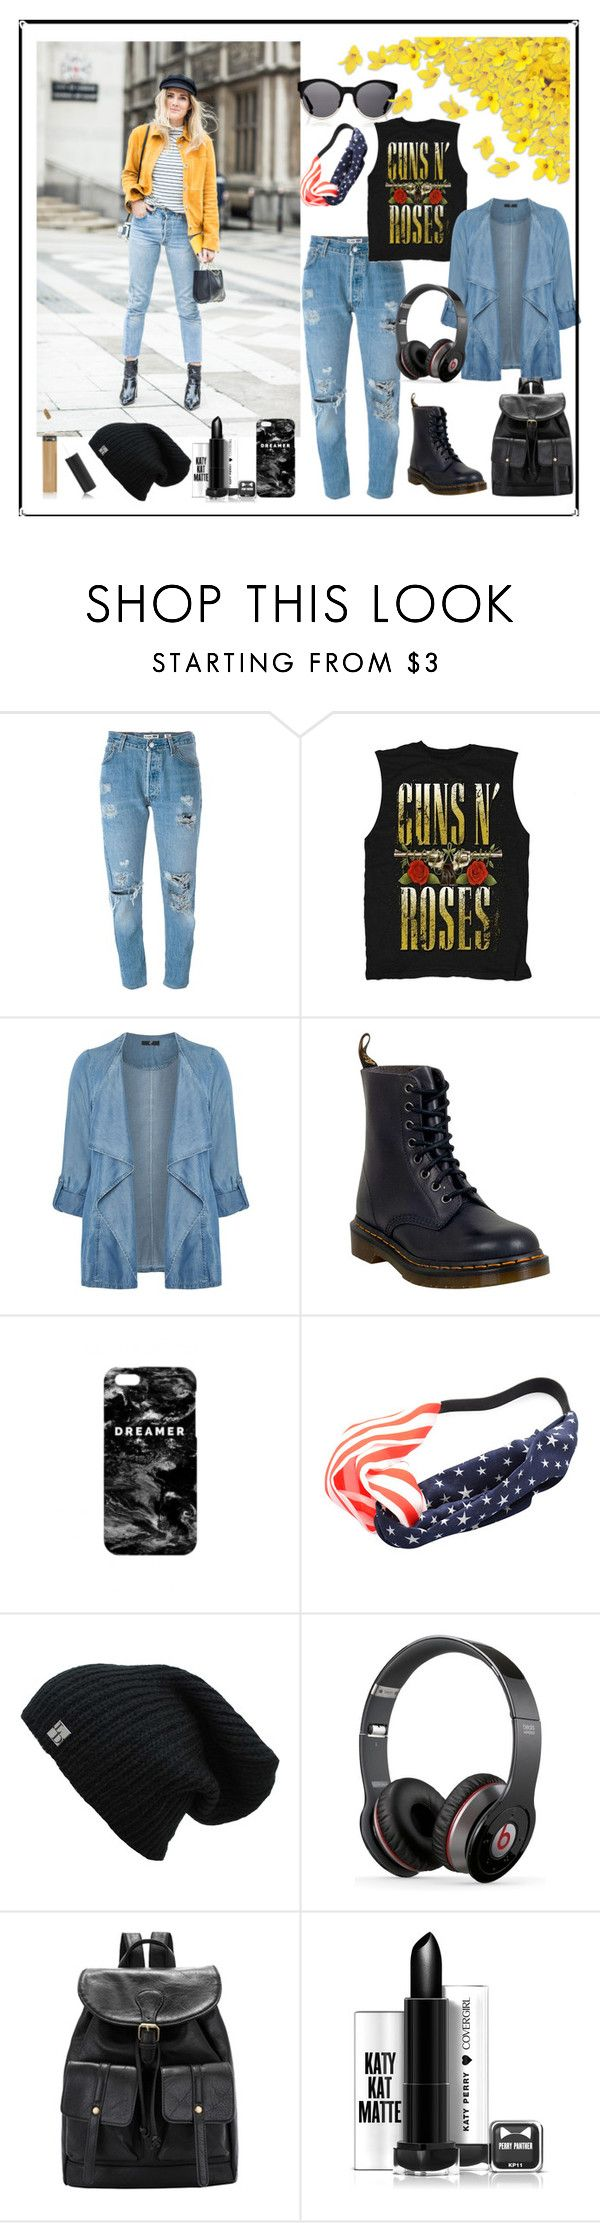 """""""Sport and Fashion"""" by explorer-14673103603 ❤ liked on Polyvore featuring Levi's, Kerr®, Evans, Dr. Martens, Mr. Gugu & Miss Go, Chicnova Fashion, Beats by Dr. Dre, denimjackets, WardrobeStaples and plus size clothing"""